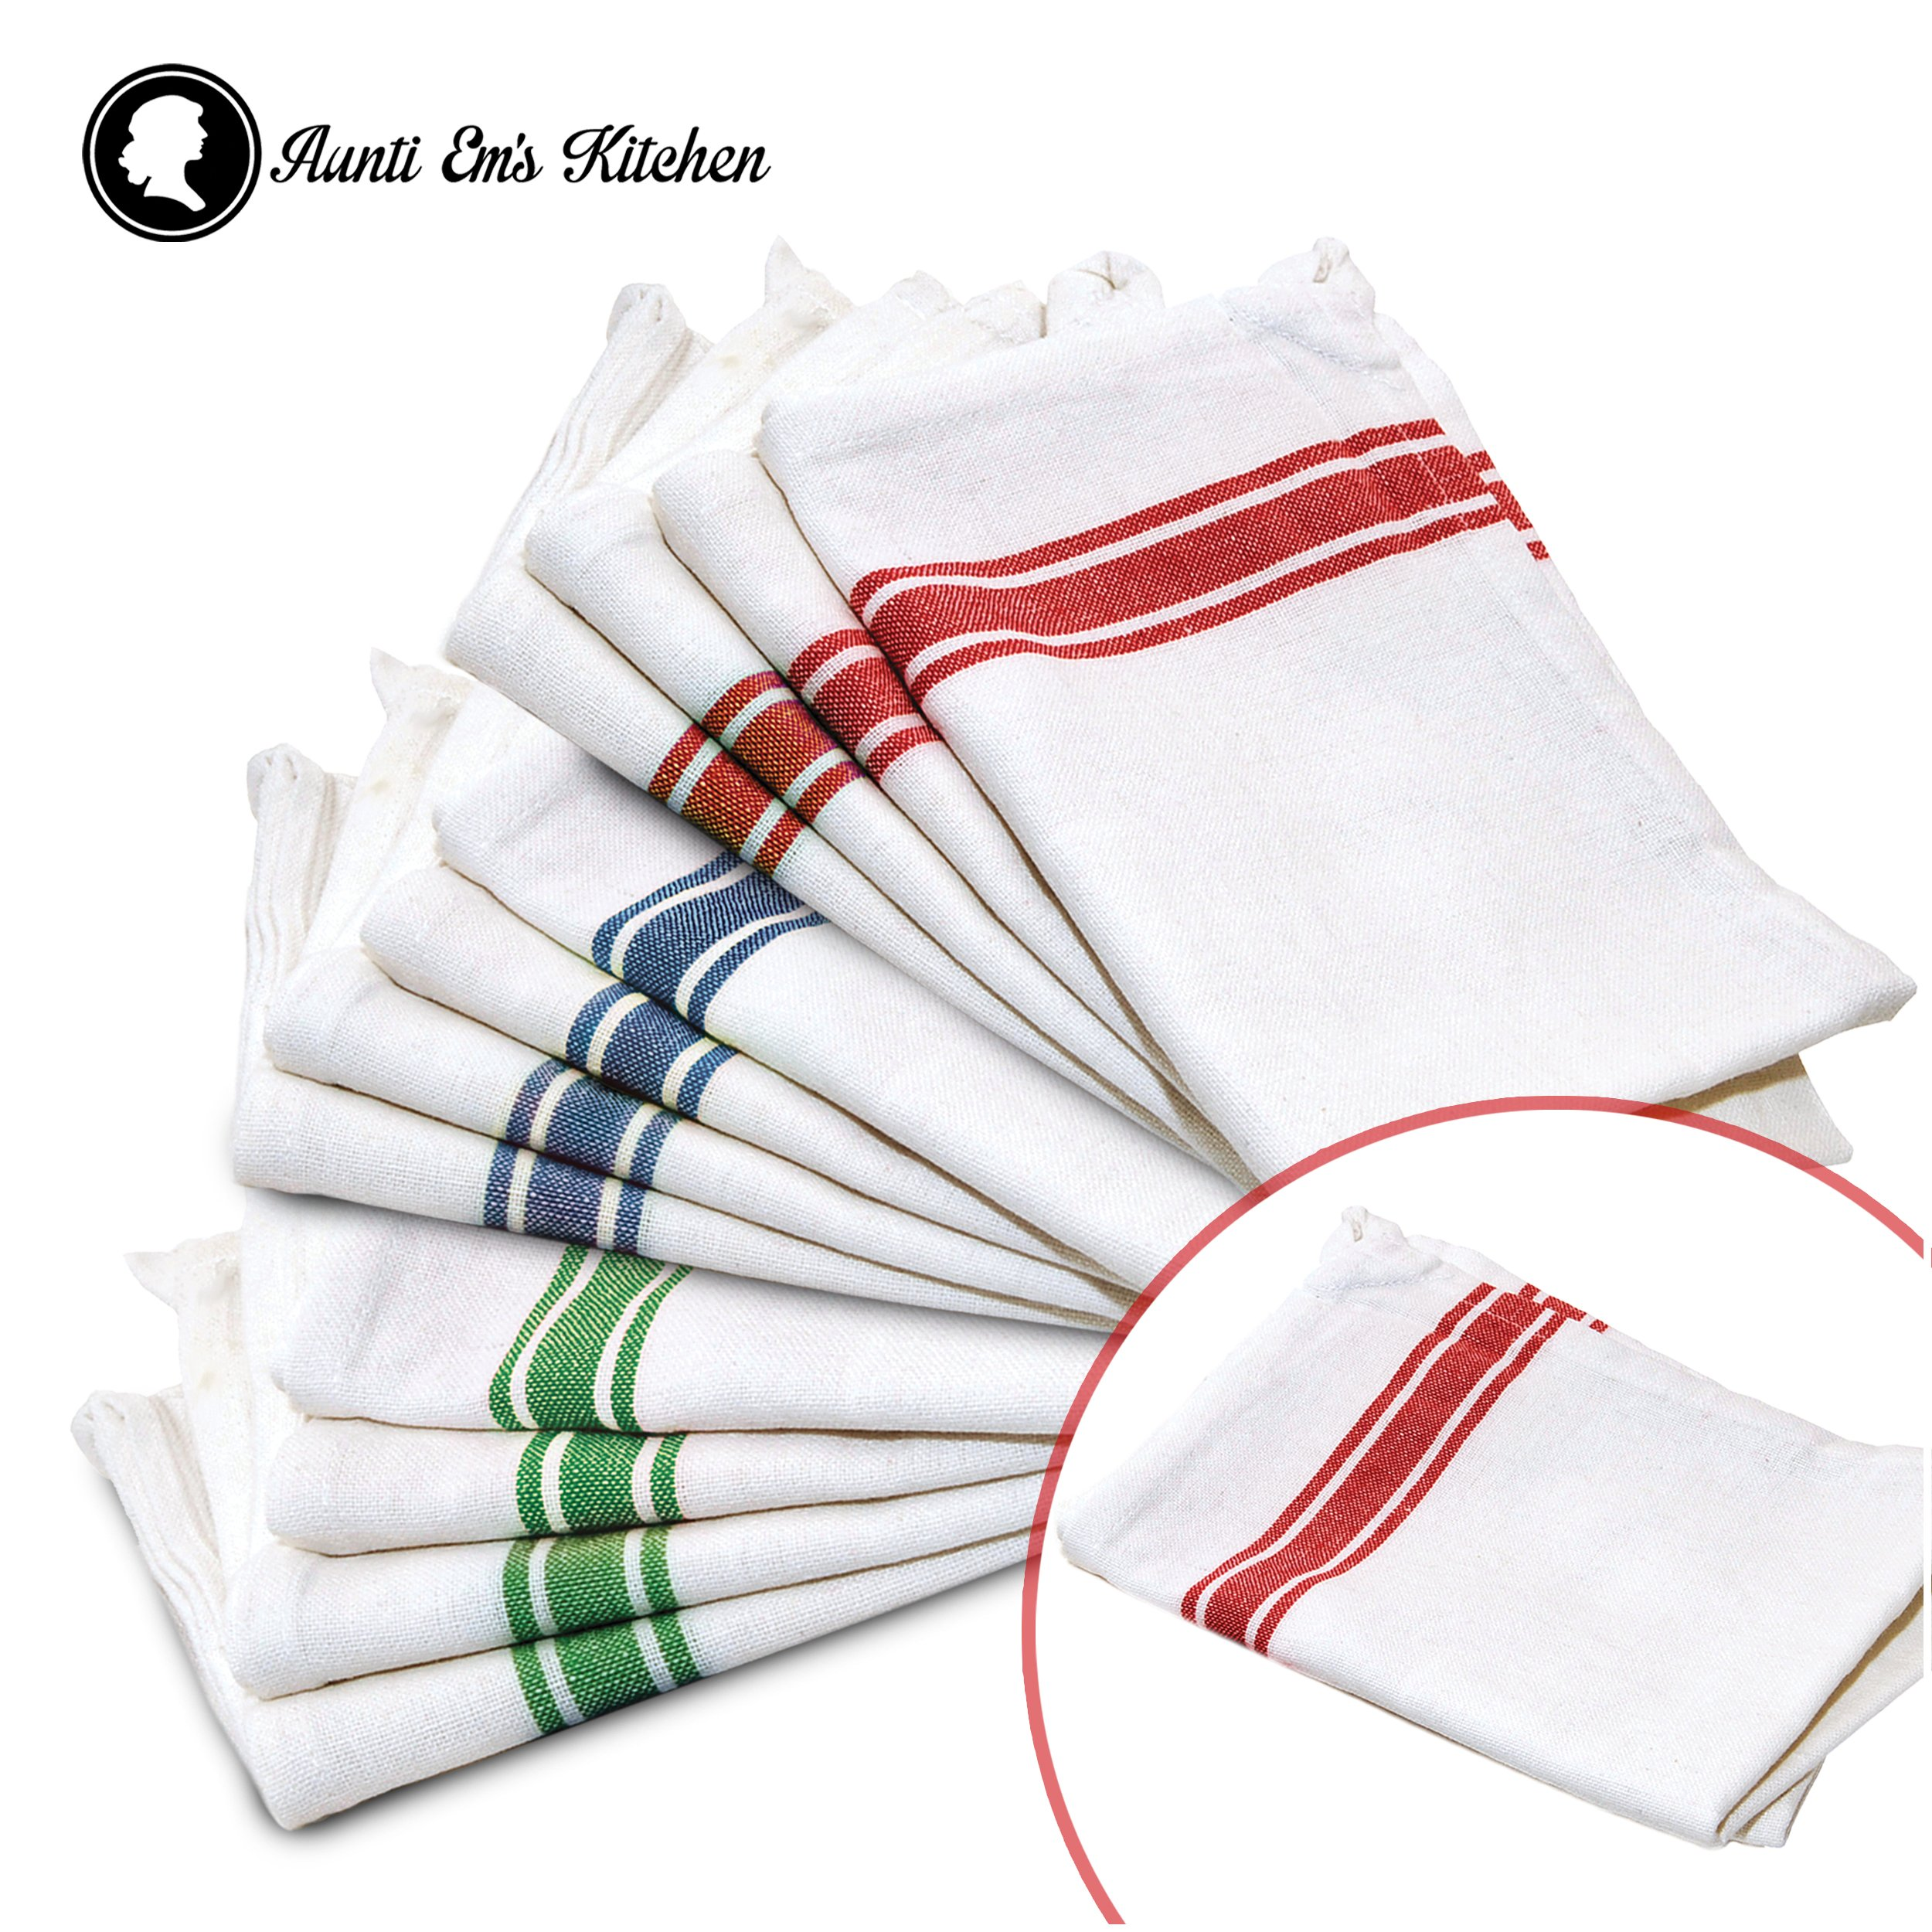 Kitchen Dish Towels with Vintage Design for Kitchen Decor Super Absorbent 100% Natural Cotton Kitchen Towels (Size: 25.5 x 15.5 inches) White with Red, Green and Blue, 13-Pack